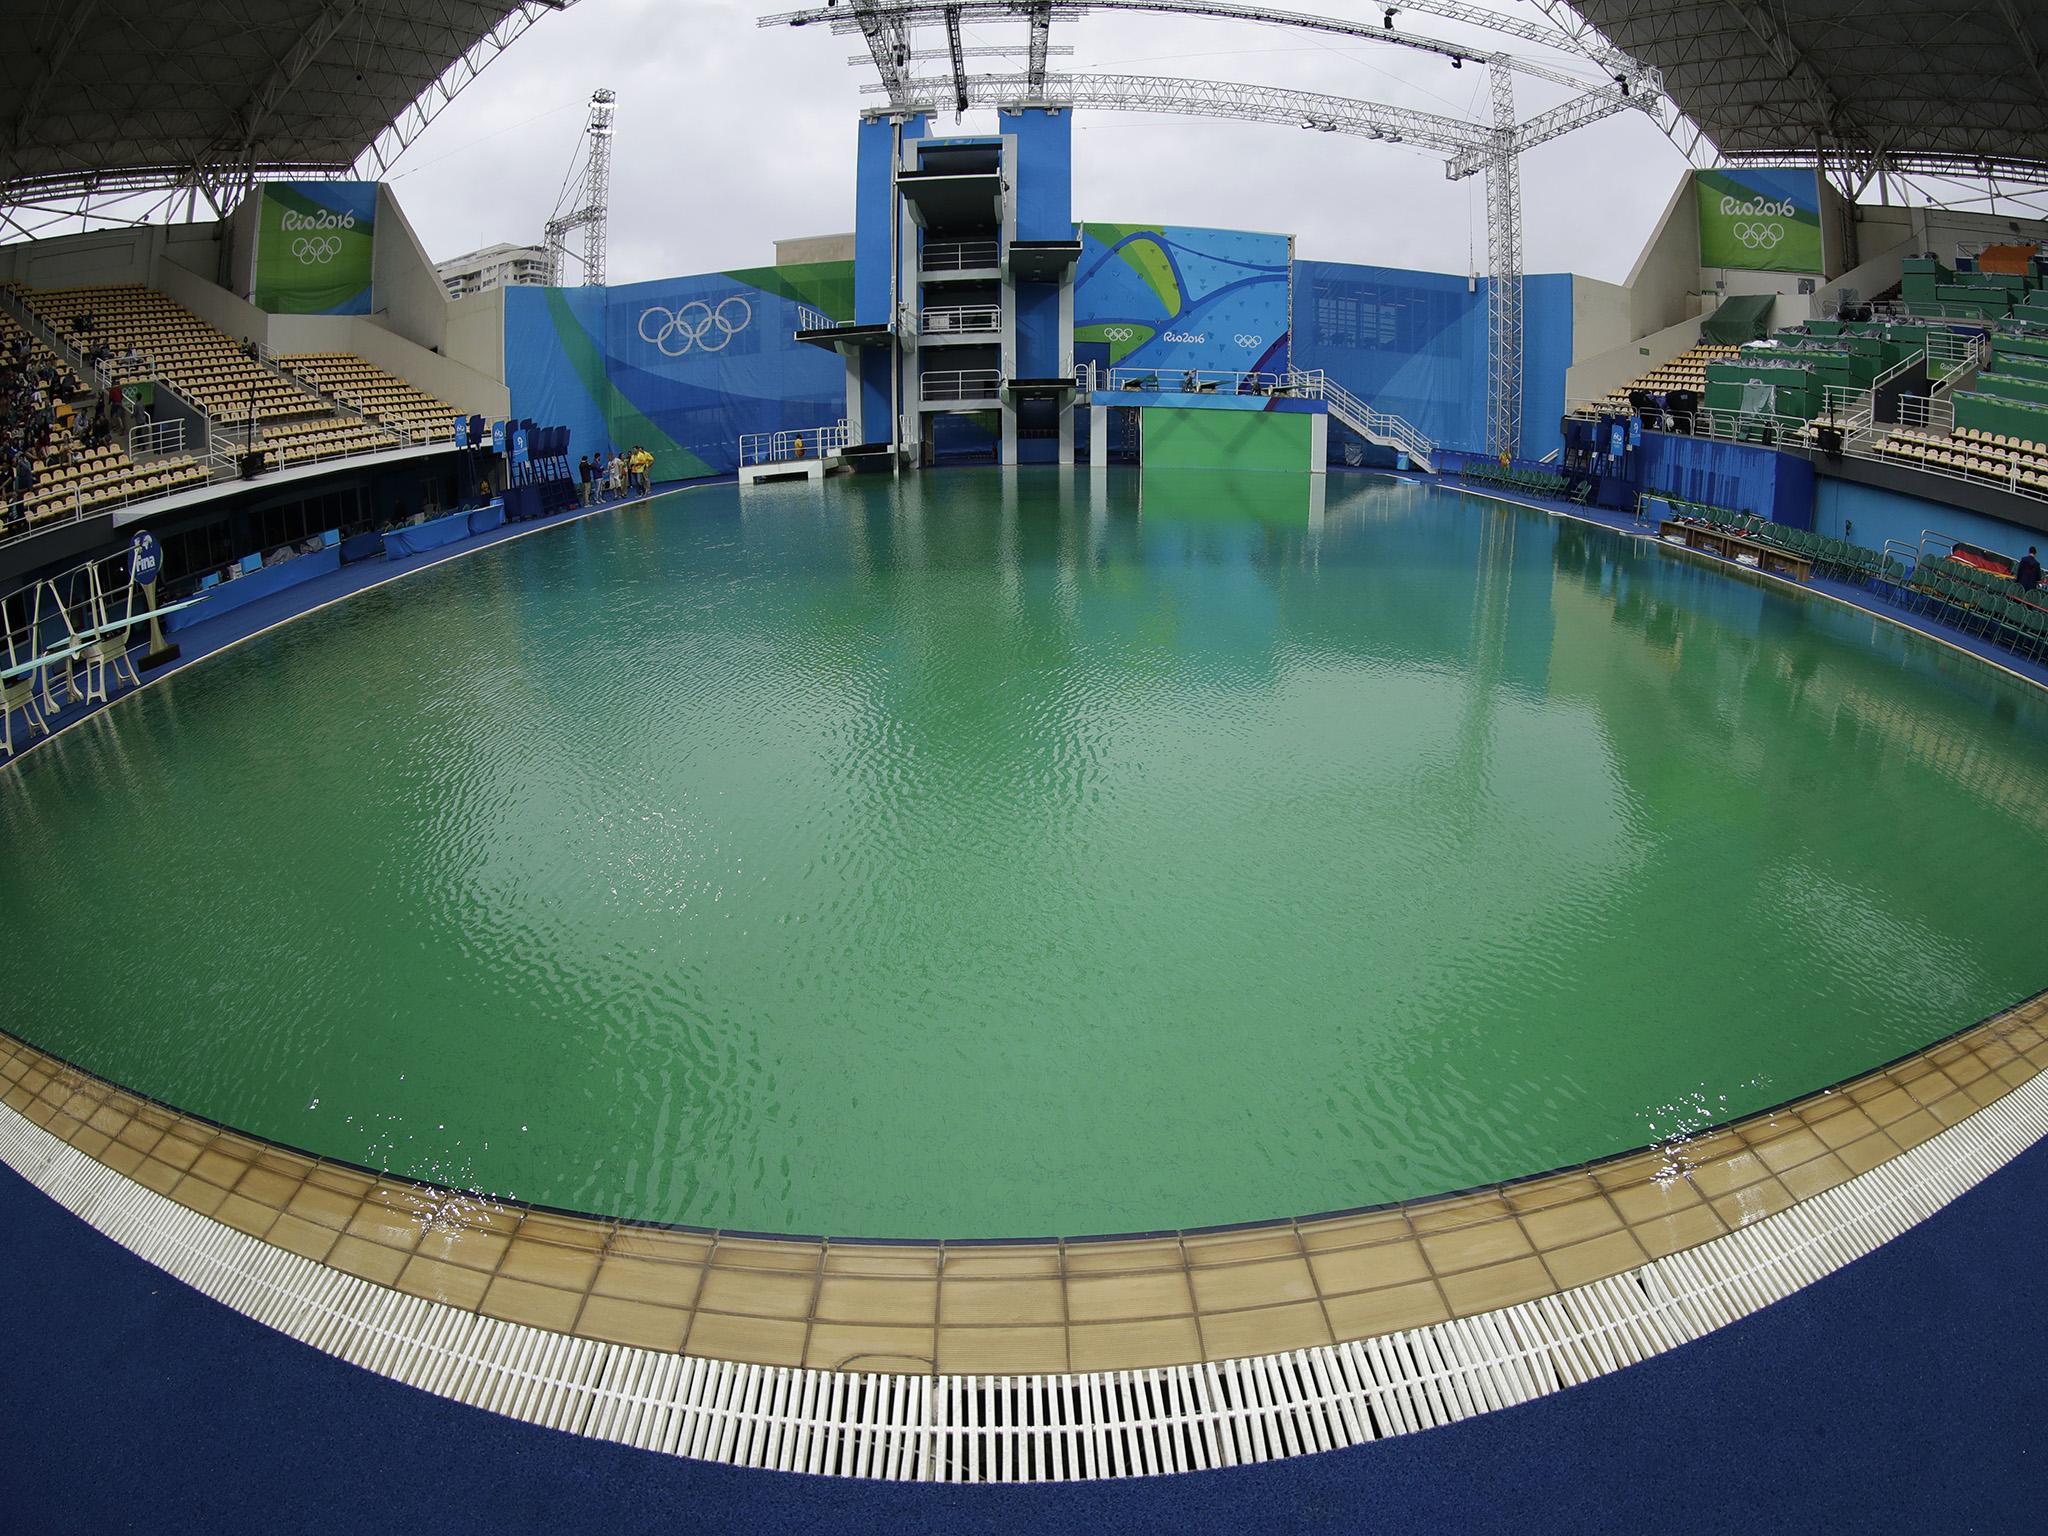 Rio 2016: Green Olympic Pool Drained As Organisers Reveal Hydrogen Peroxide  Caused Colour Change | The Independent